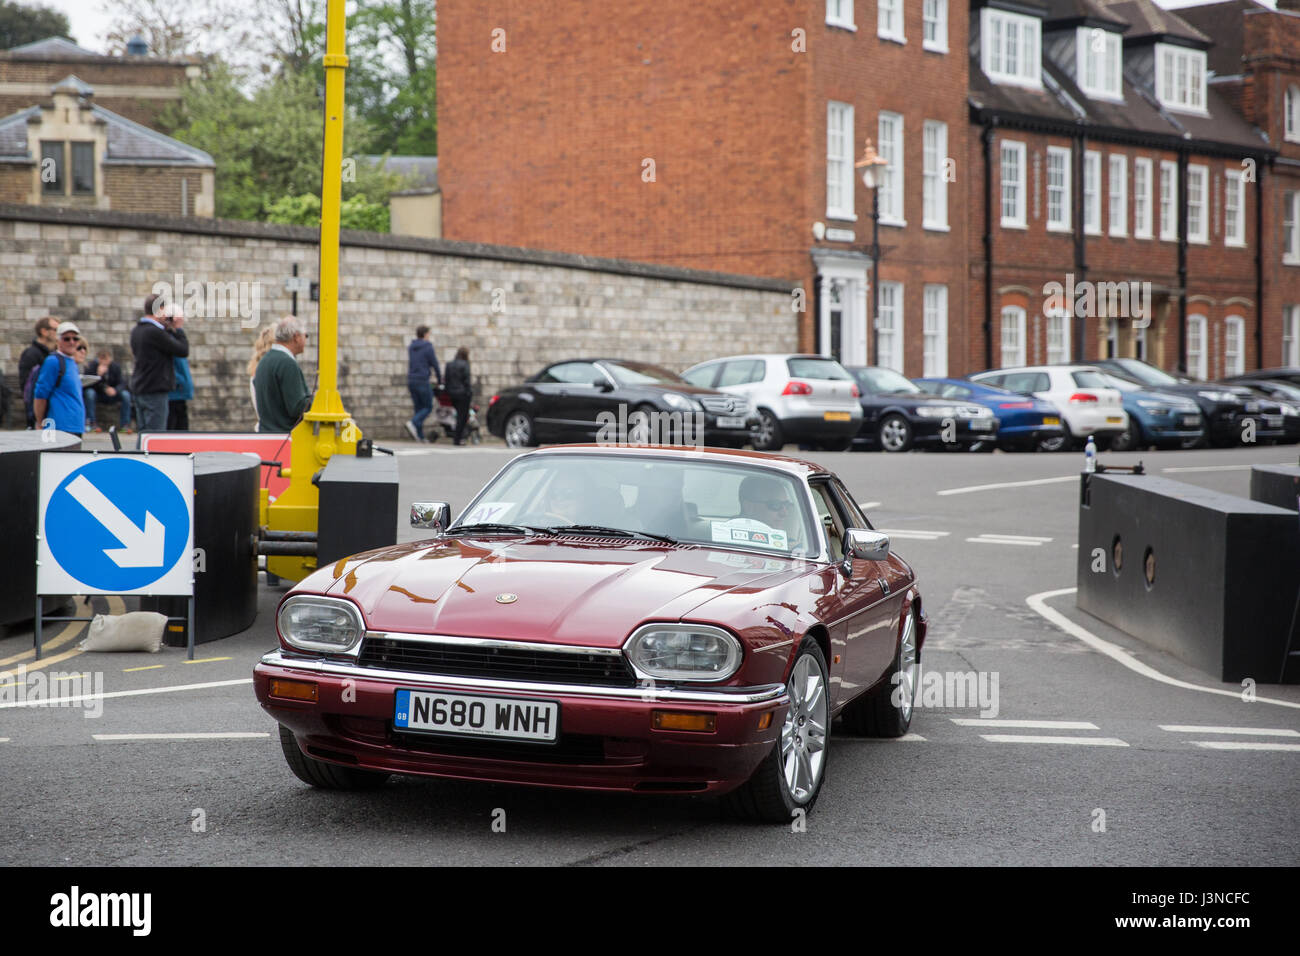 A Procession Of 250 Vintage Jaguar Cars Makes Its Way Through Windsor Town  Centre Into Windsor Castle During The Royal Windsor Jaguar Festival In Aid  Of The ...